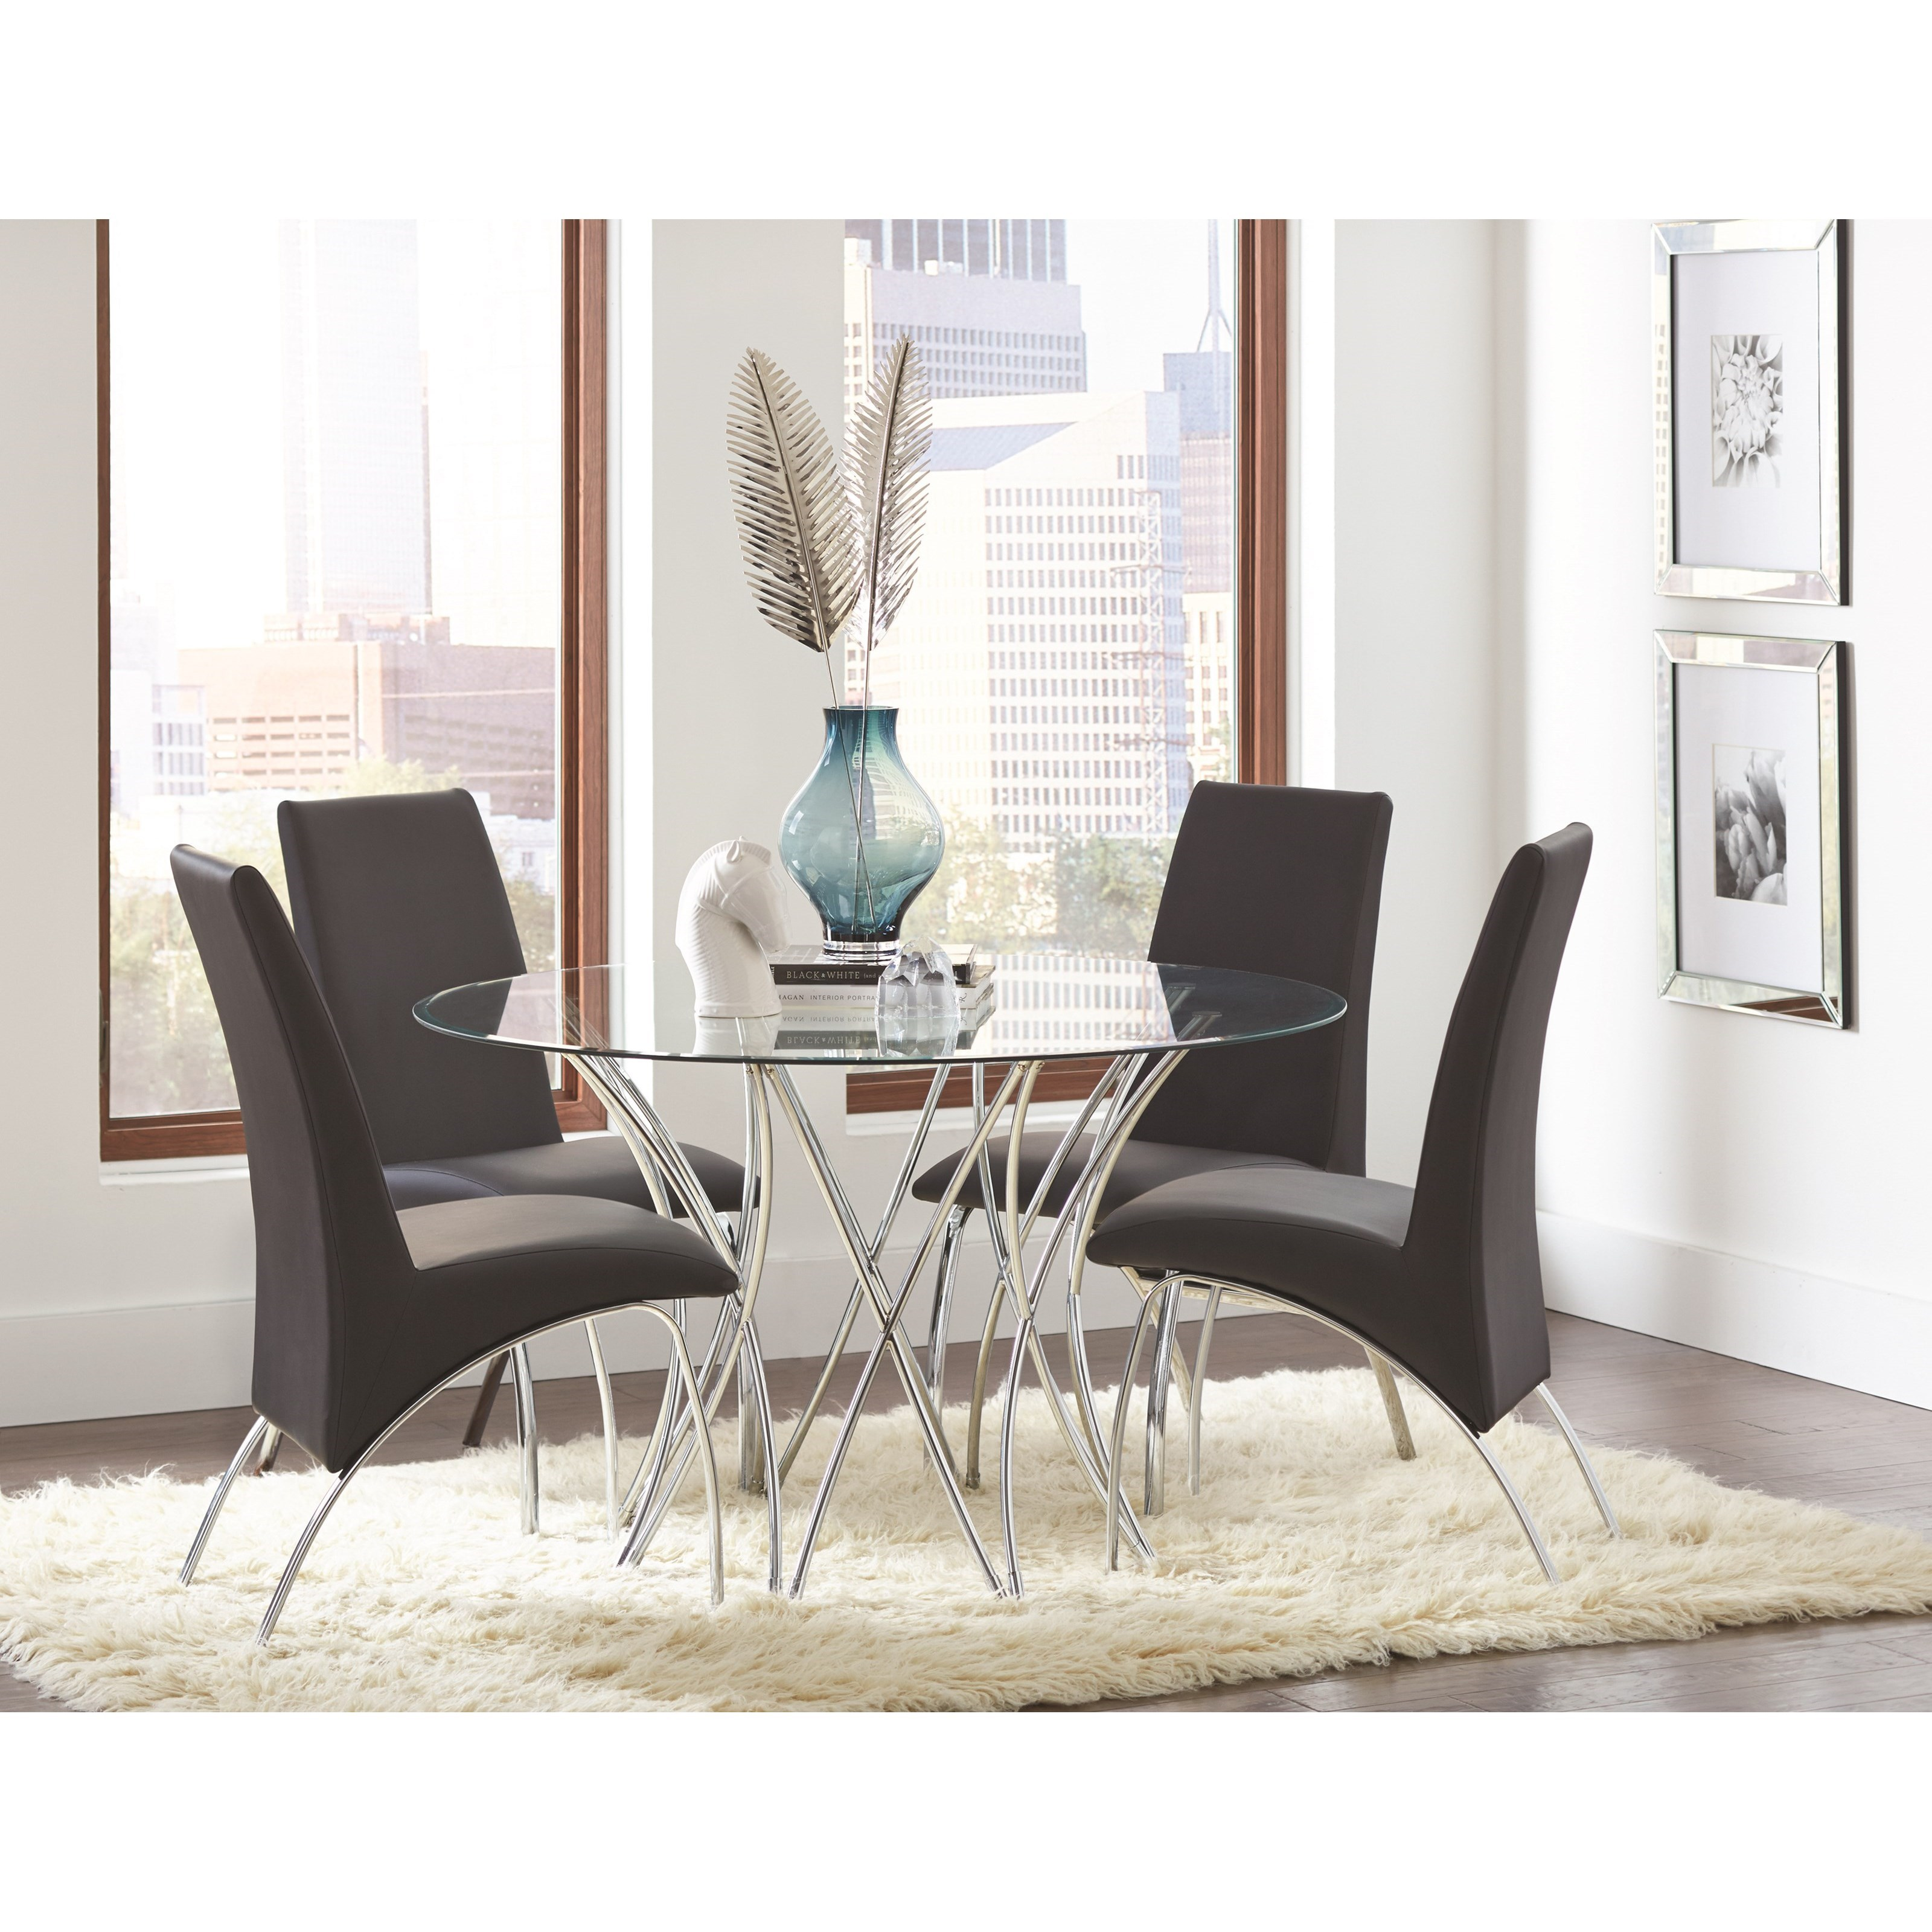 Coaster Cabianca Table and Chair Set - Item Number: 106921+4x120802